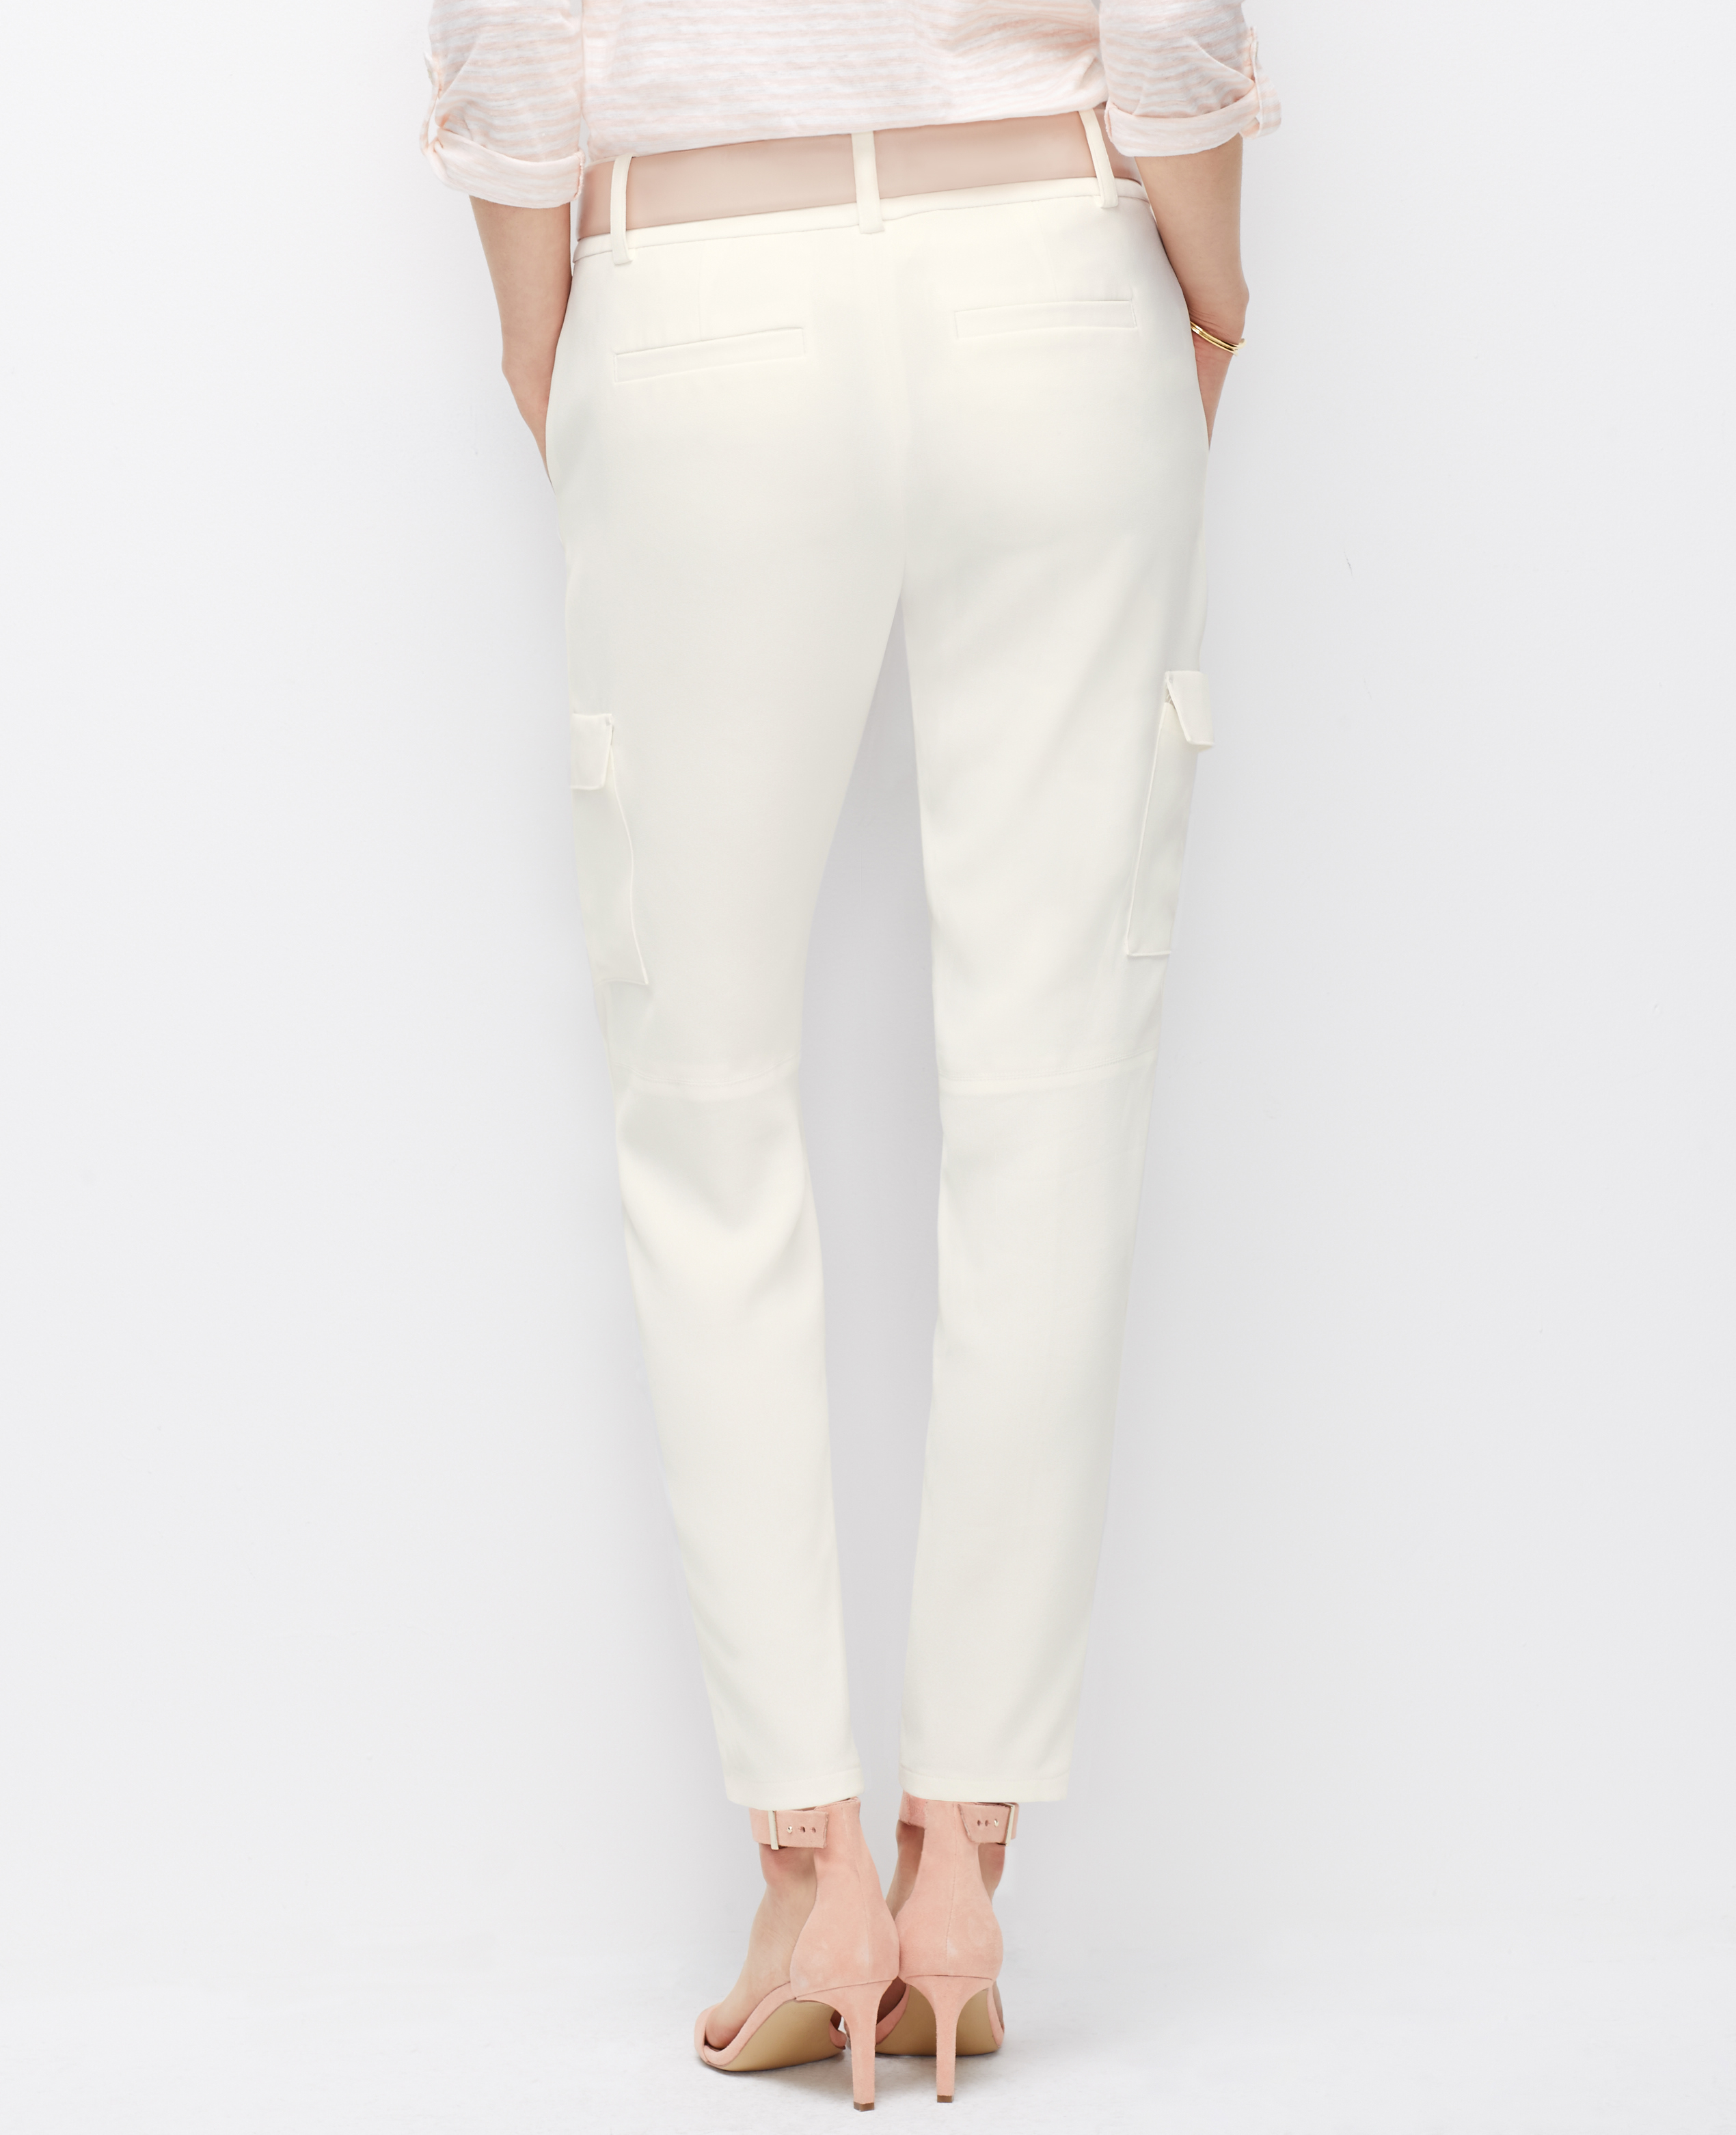 Ann taylor Petite Crepe Cargo Pants in White | Lyst